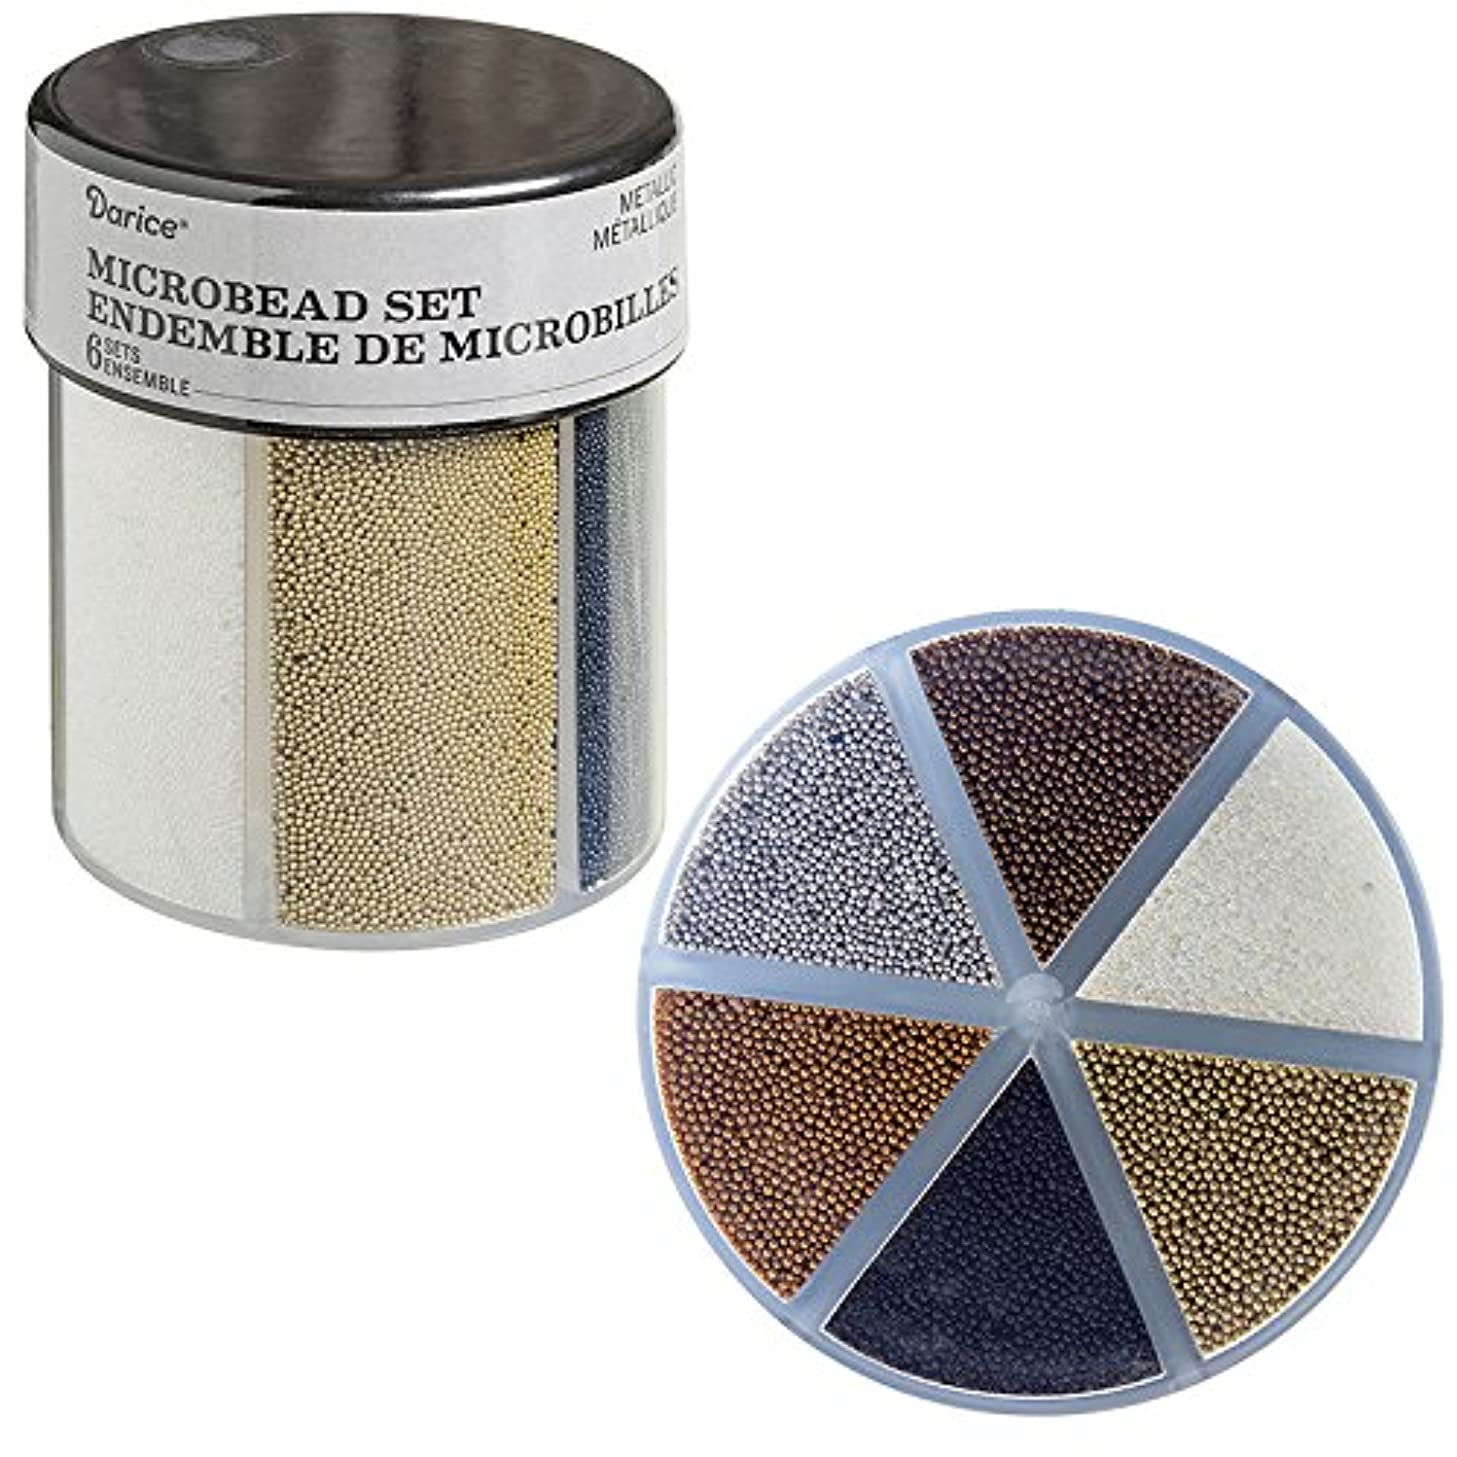 Darice 30029680 6-Color Microbeads Caddy: Metallics Beads,